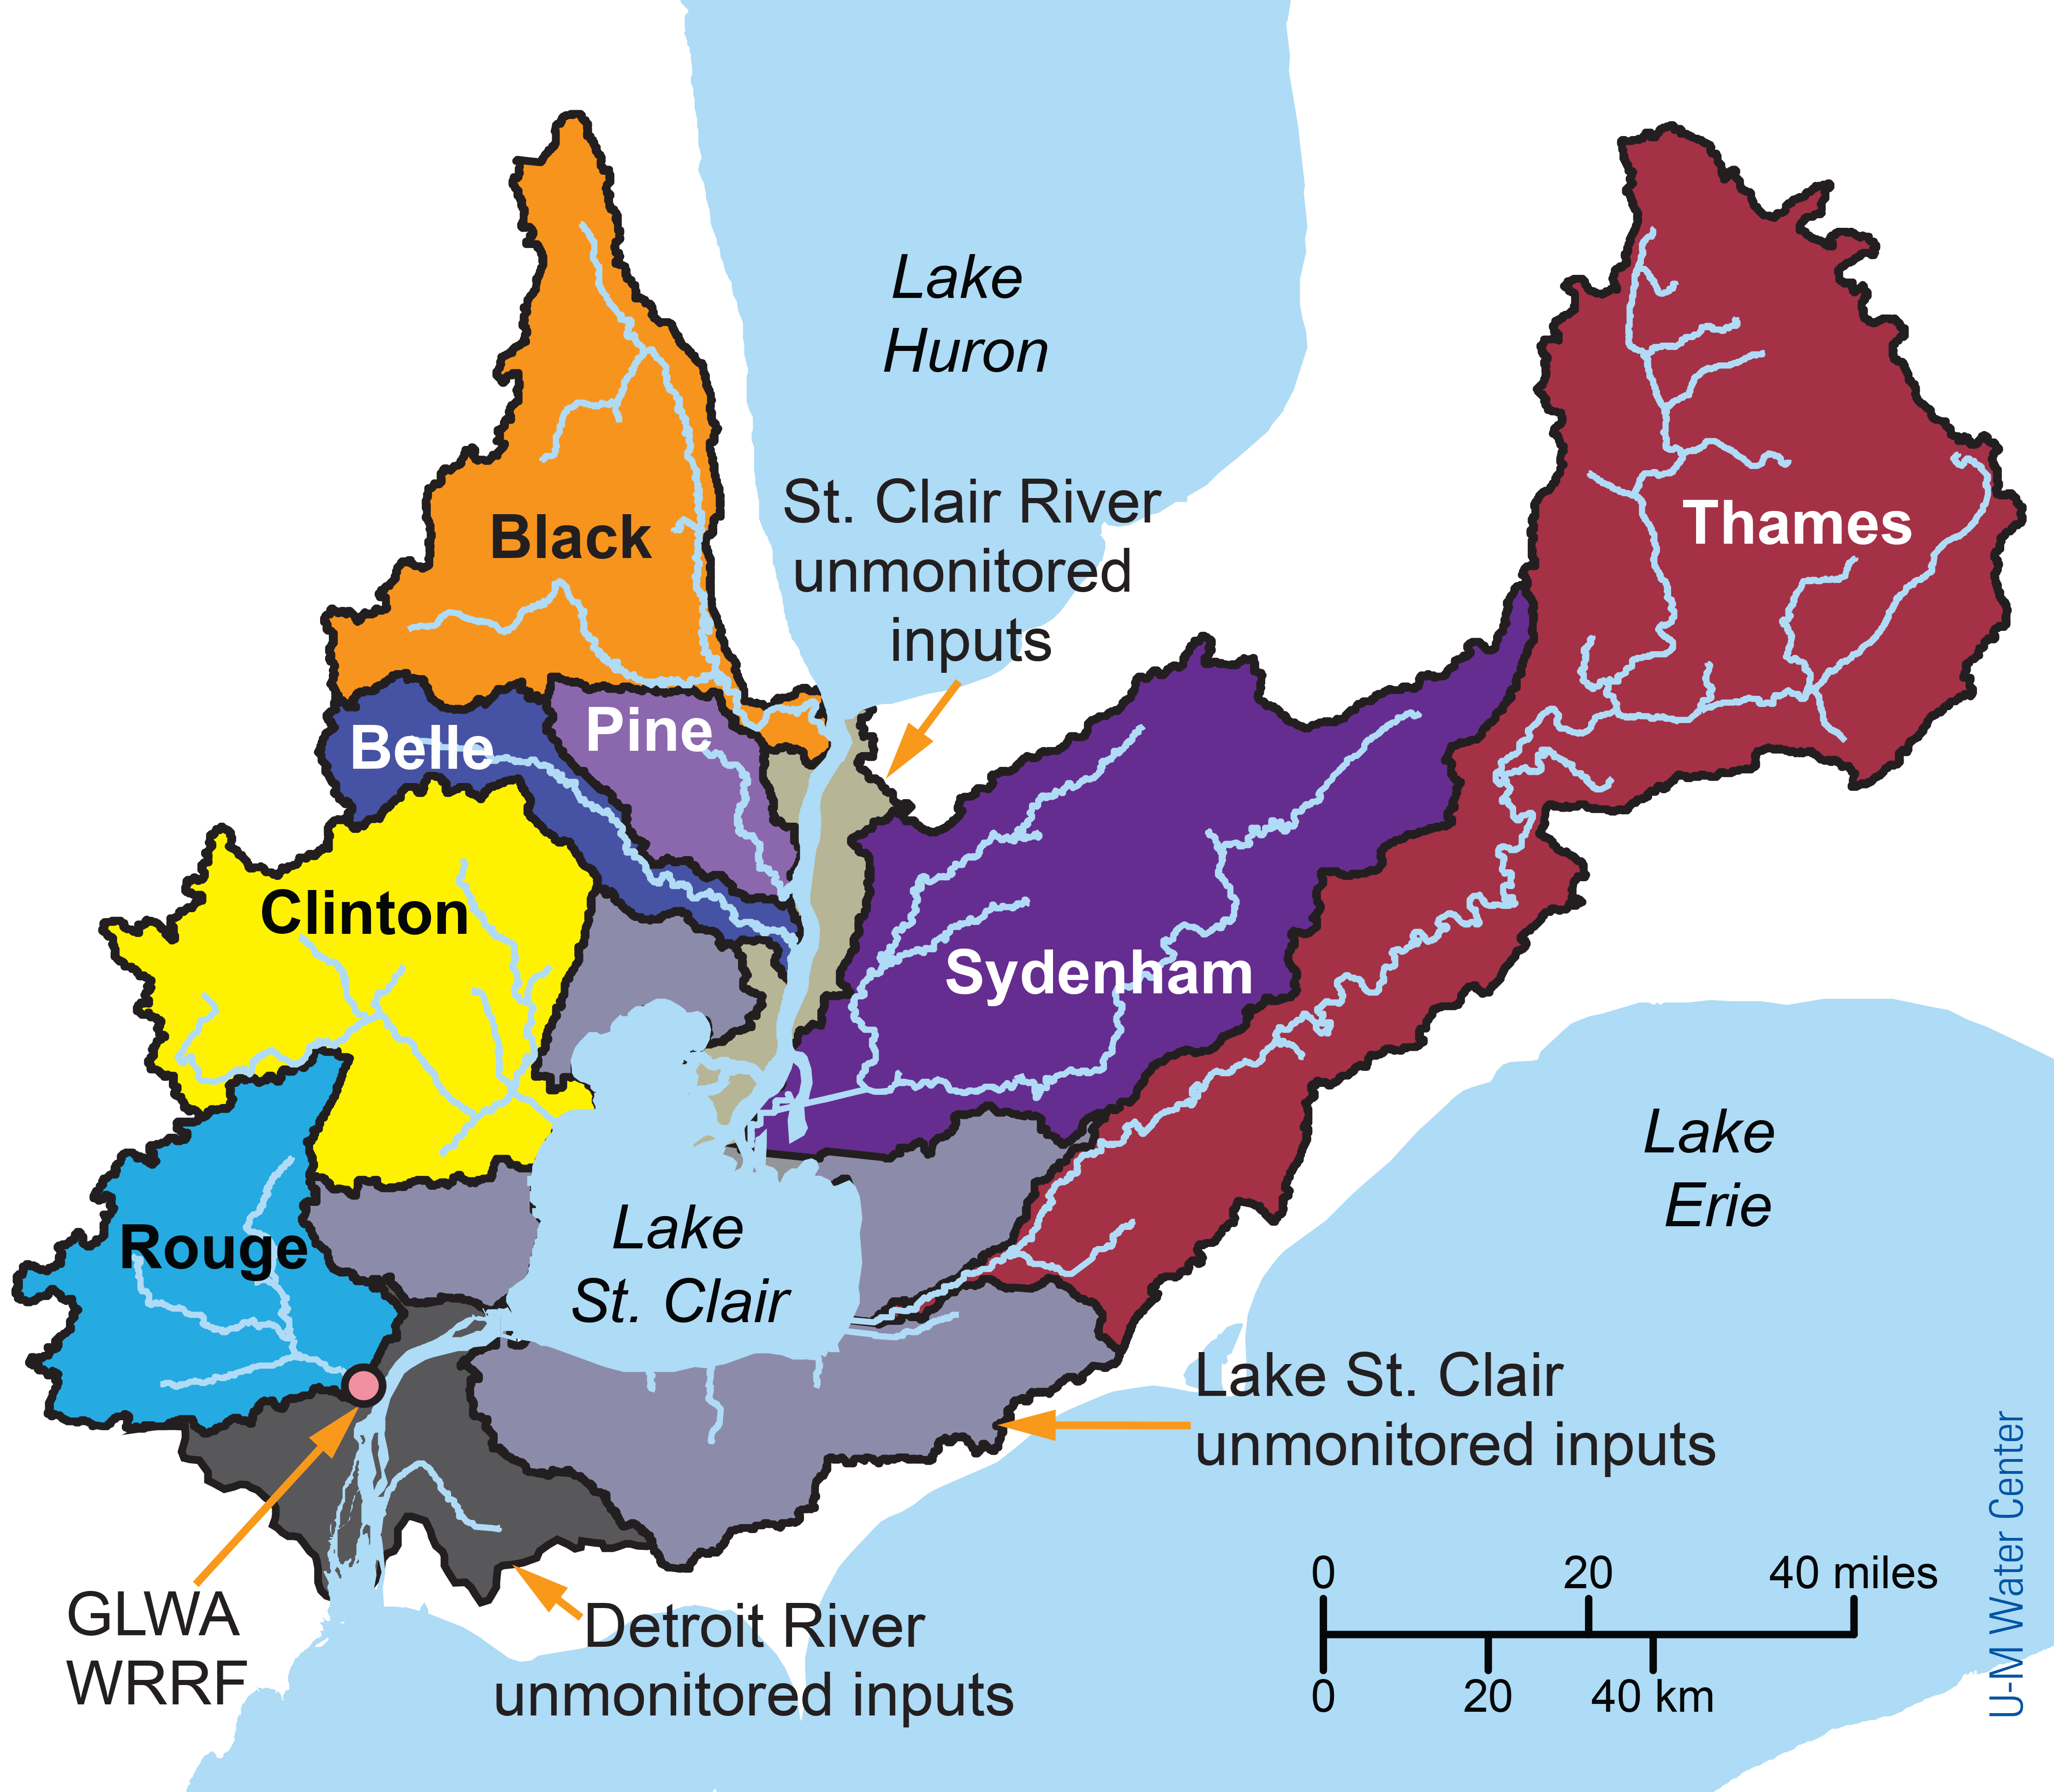 Map of the binational St. Clair-Detroit River System watershed, which includes lands on both sides of the international border that drain into the St. Clair River, Lake St. Clair, and the Detroit River. Land on the U.S. side of the watershed is heavily urbanized, while the Canadian side is mainly agricultural. Image credit: U-M Water Center.